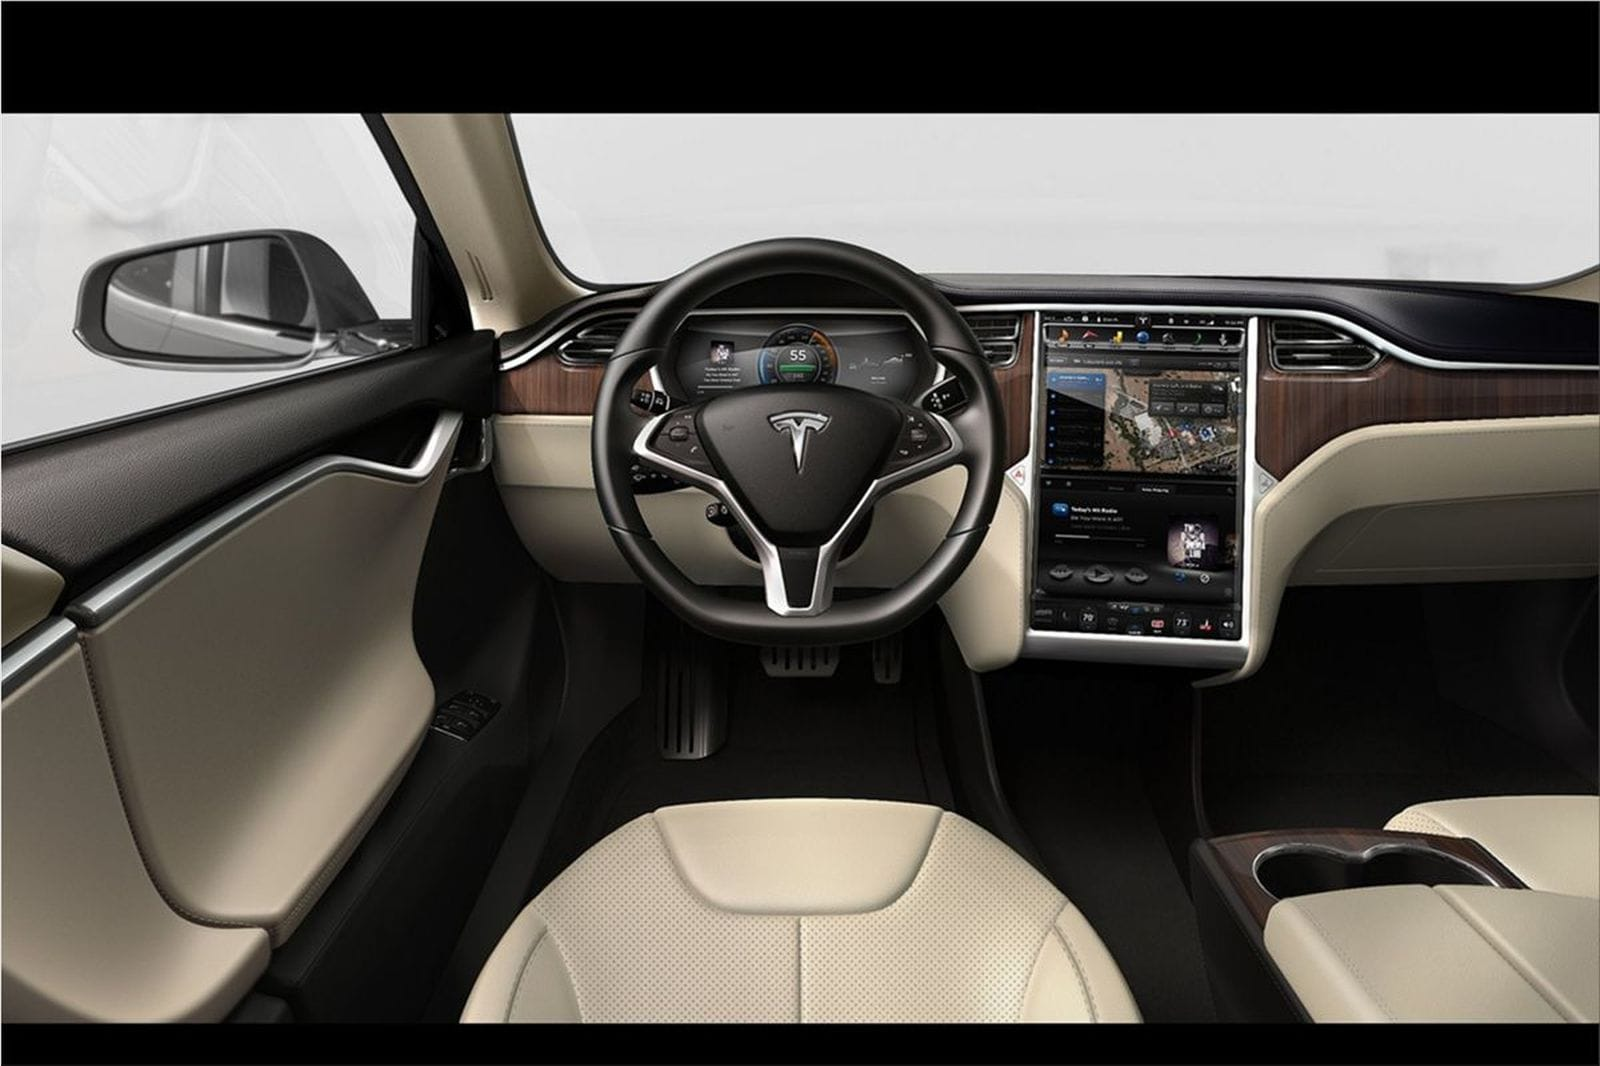 2013 Car Of The Year Tesla Model S Tesla Car Pictures